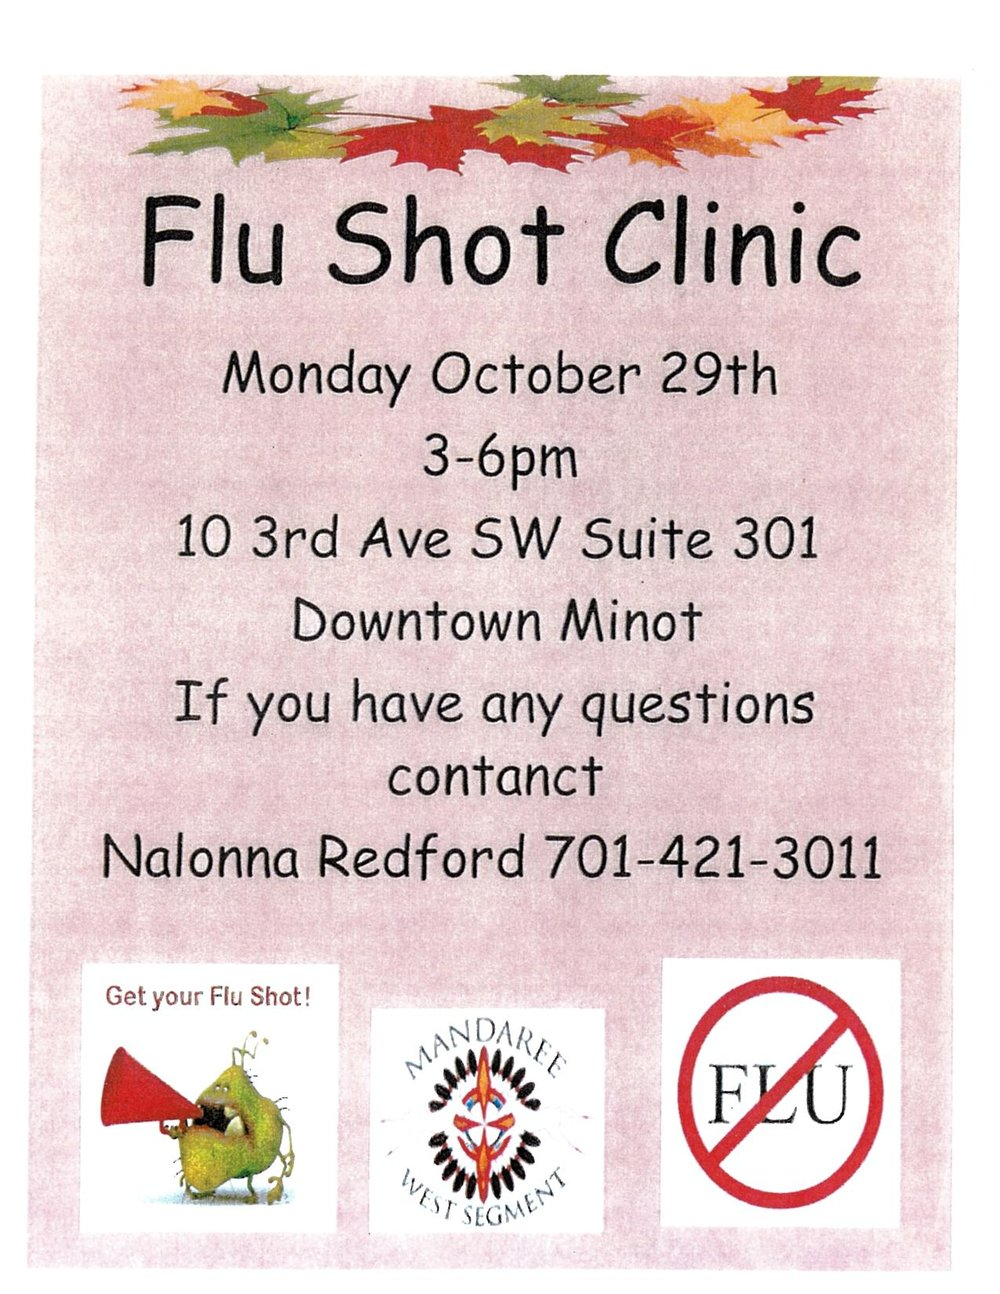 Minot Satellite Office Flu Shot Clinic.jpg